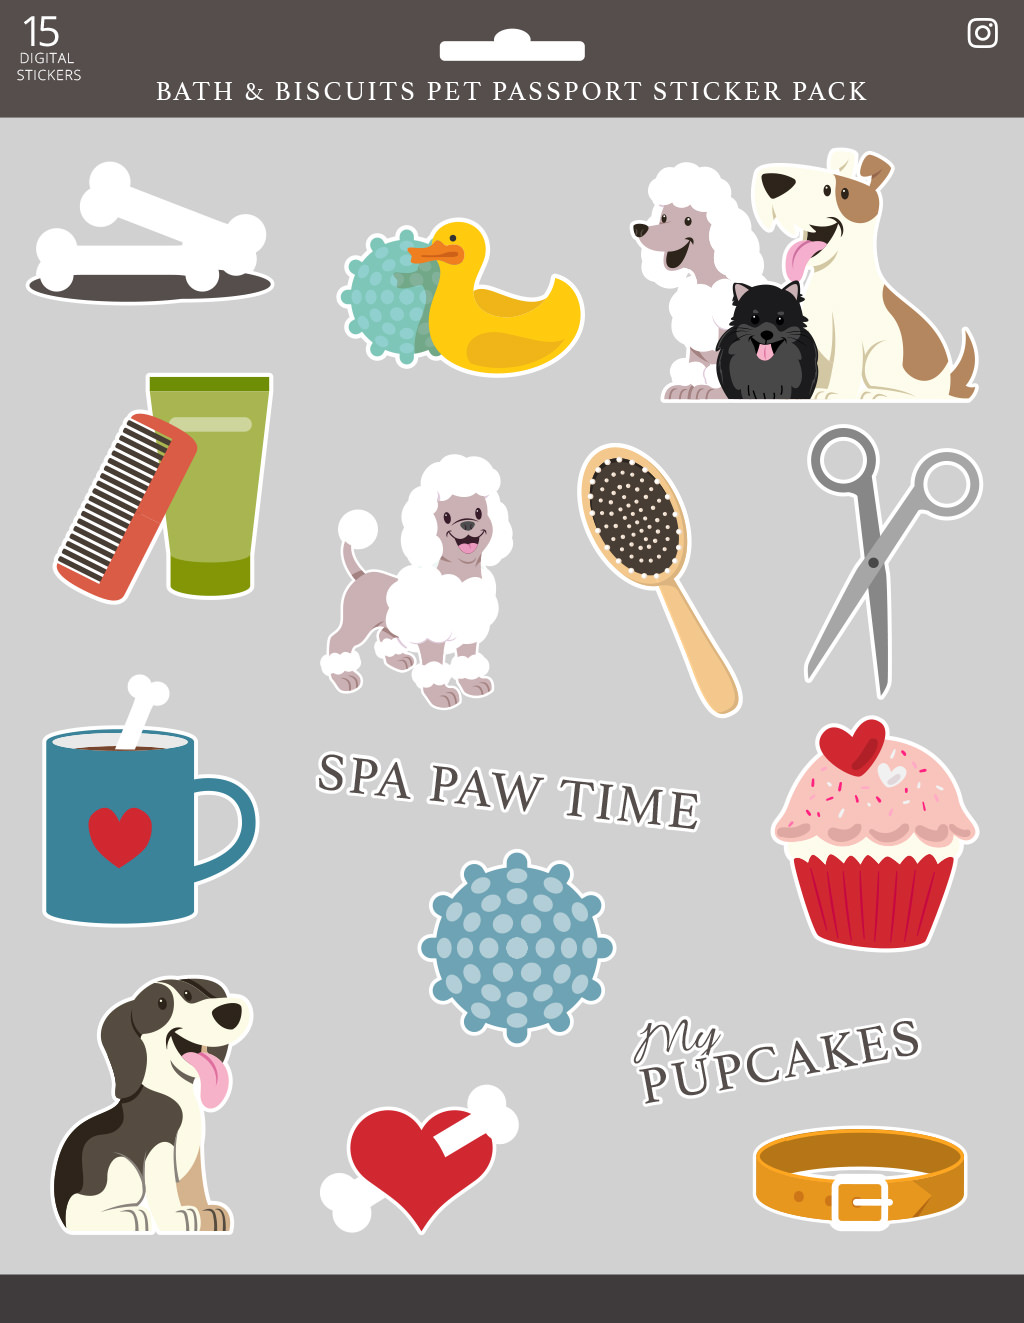 Pet Passport May digital sticker pack for Bath & Biscuits by Sniff Design Studio